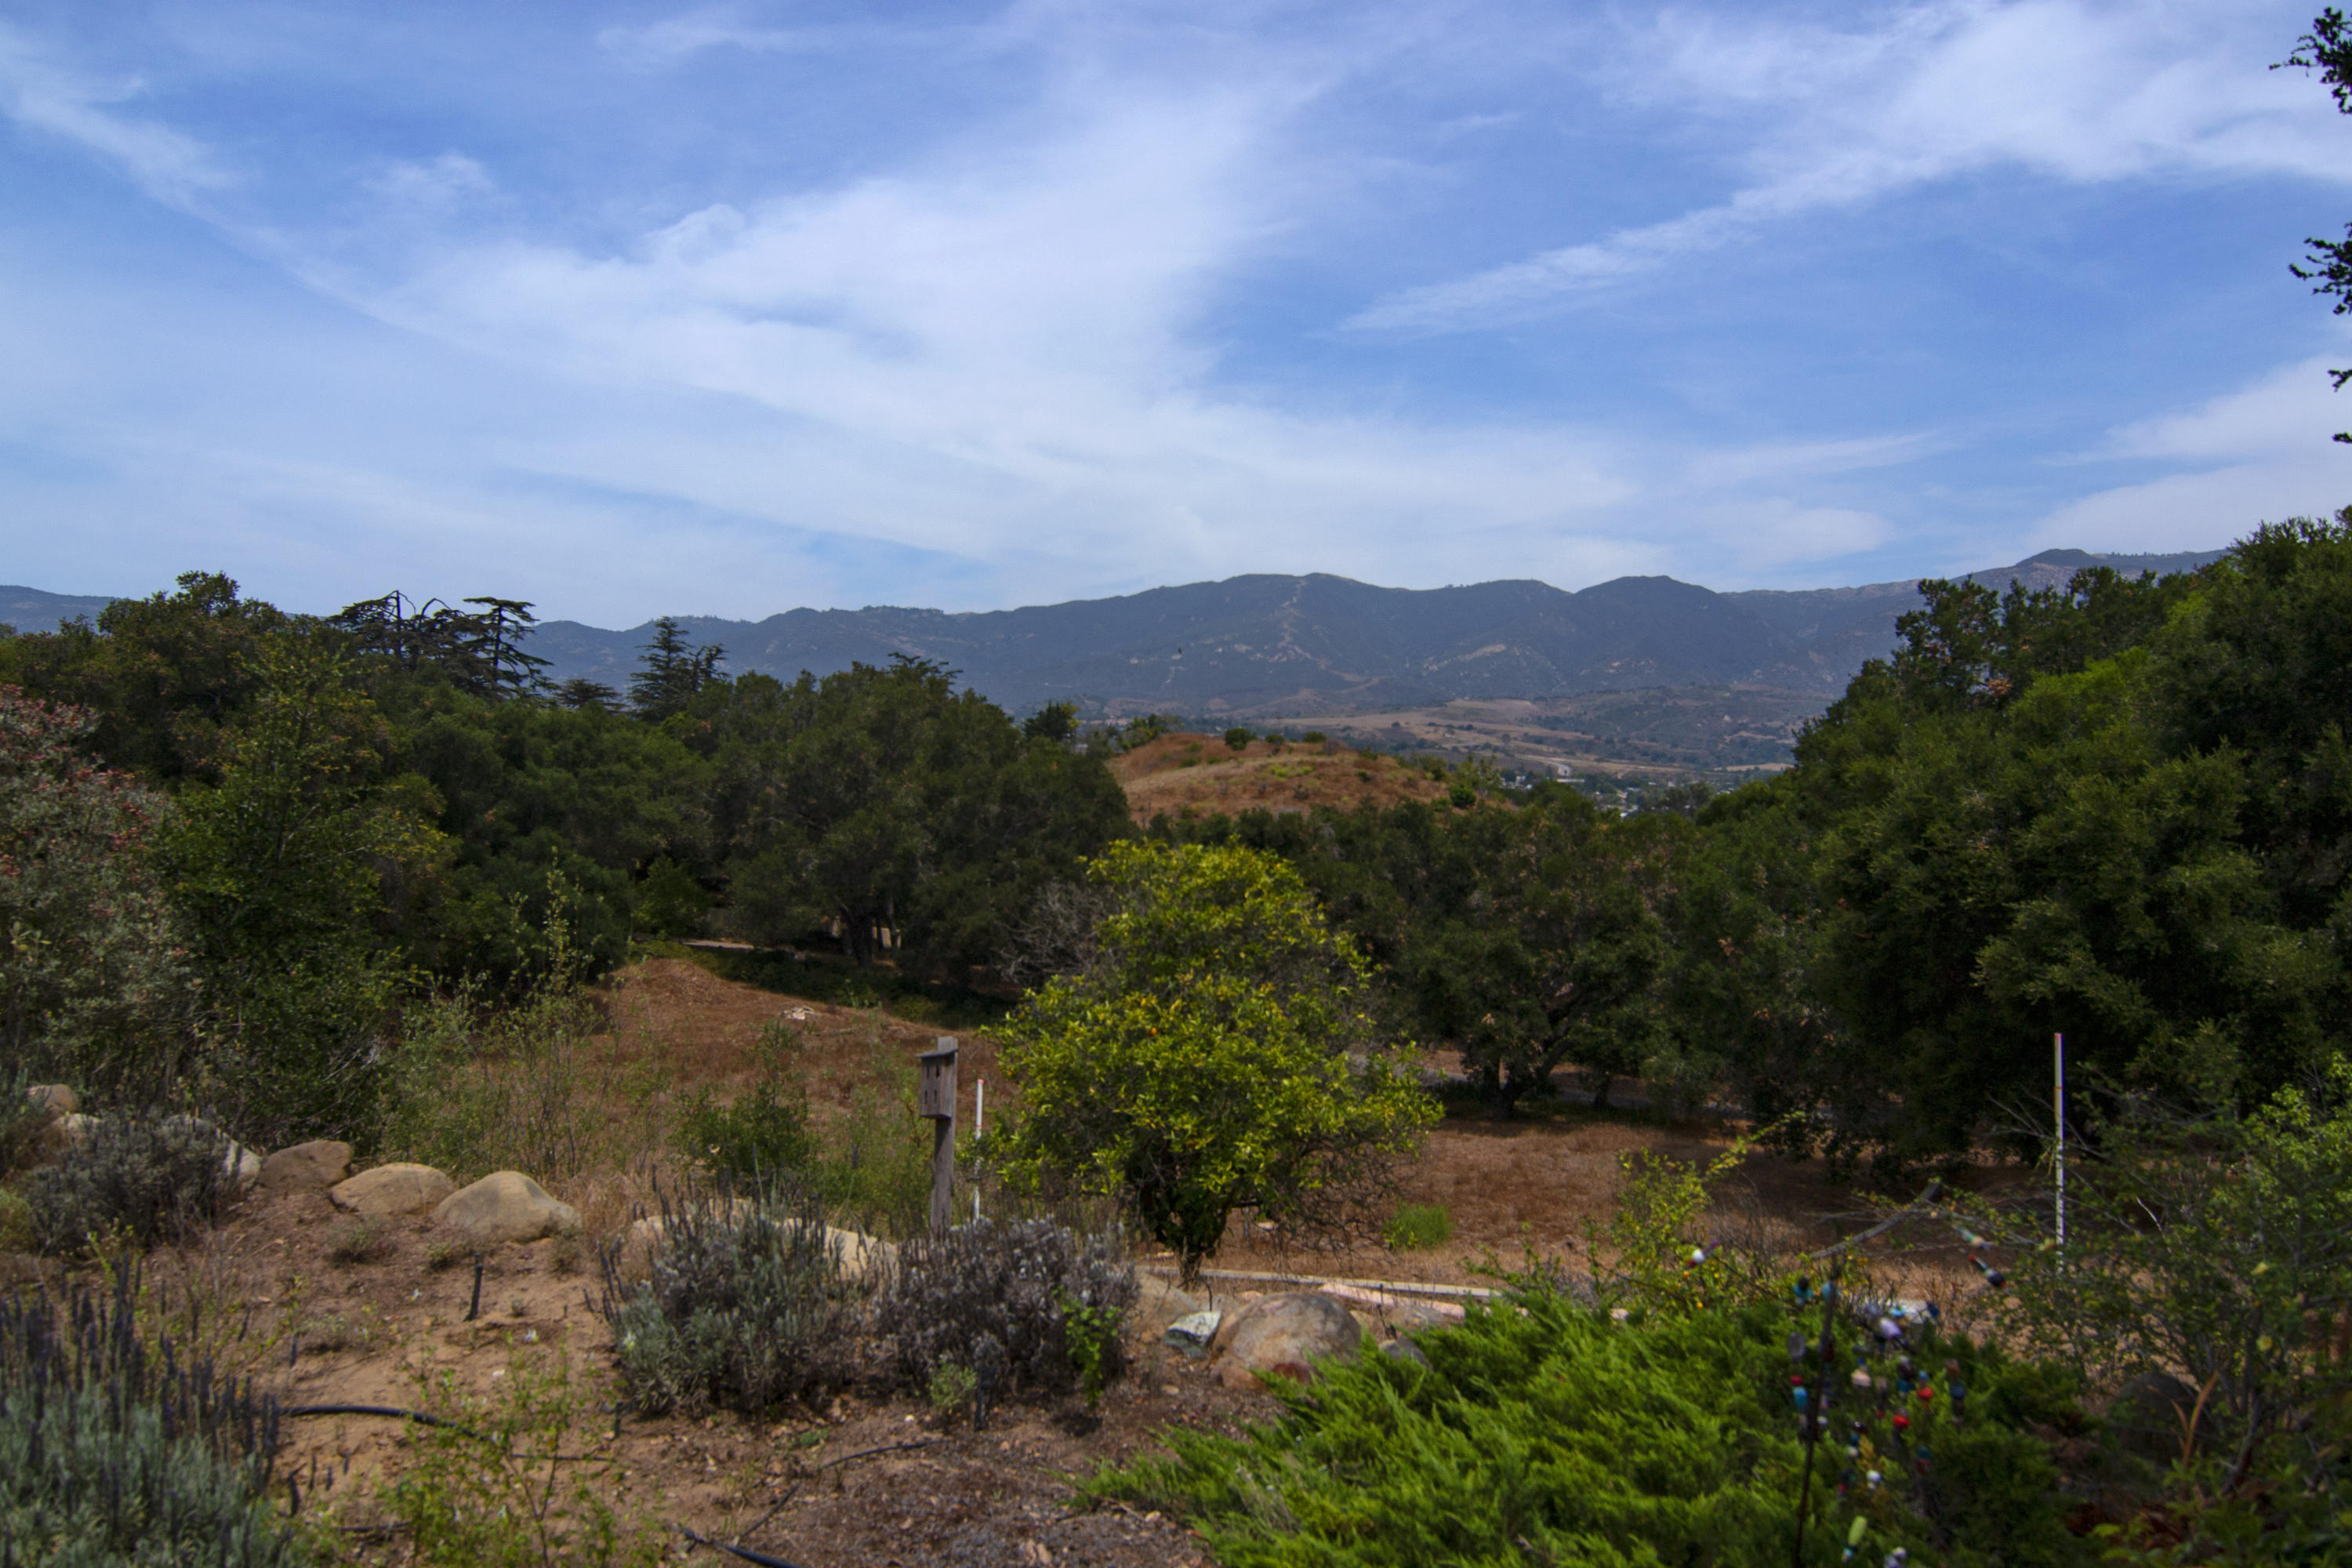 Property photo for 761 Via Tranquila Santa Barbara, California 93110 - 18-2490